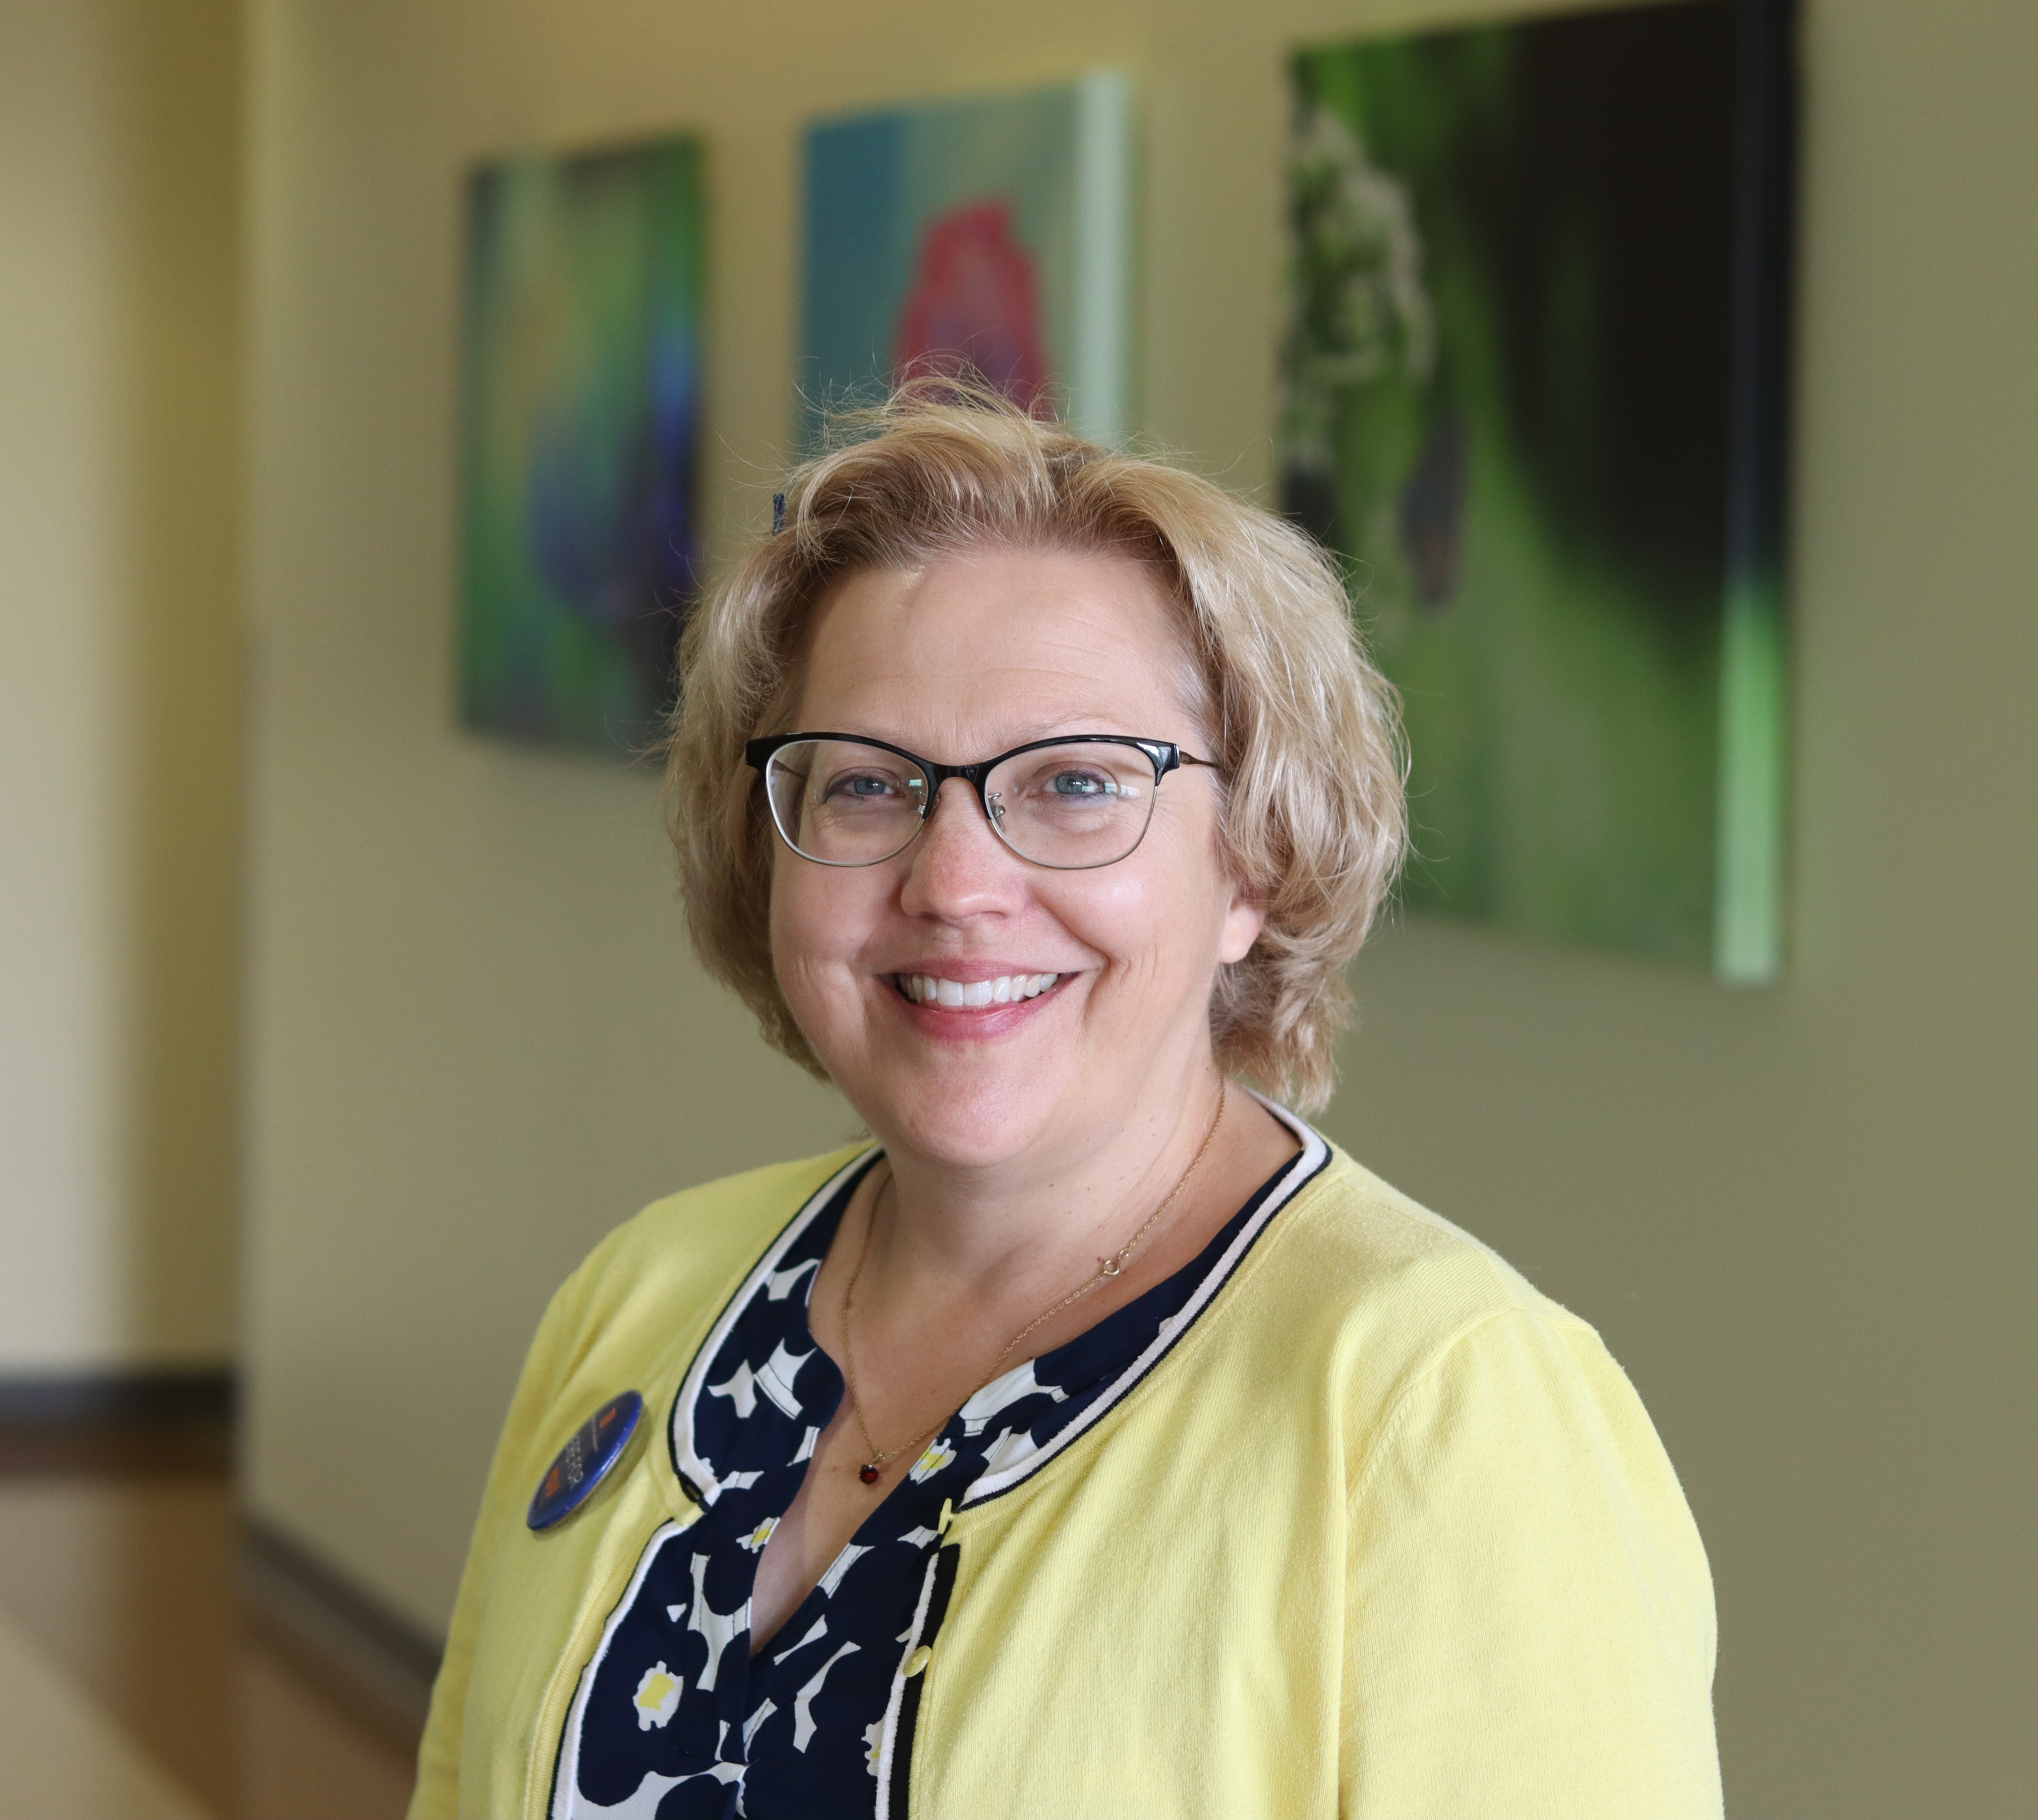 Amy Spurlock's headshot. She is standing in a hallway at the School of Nursing, looking at the camera and smiling.